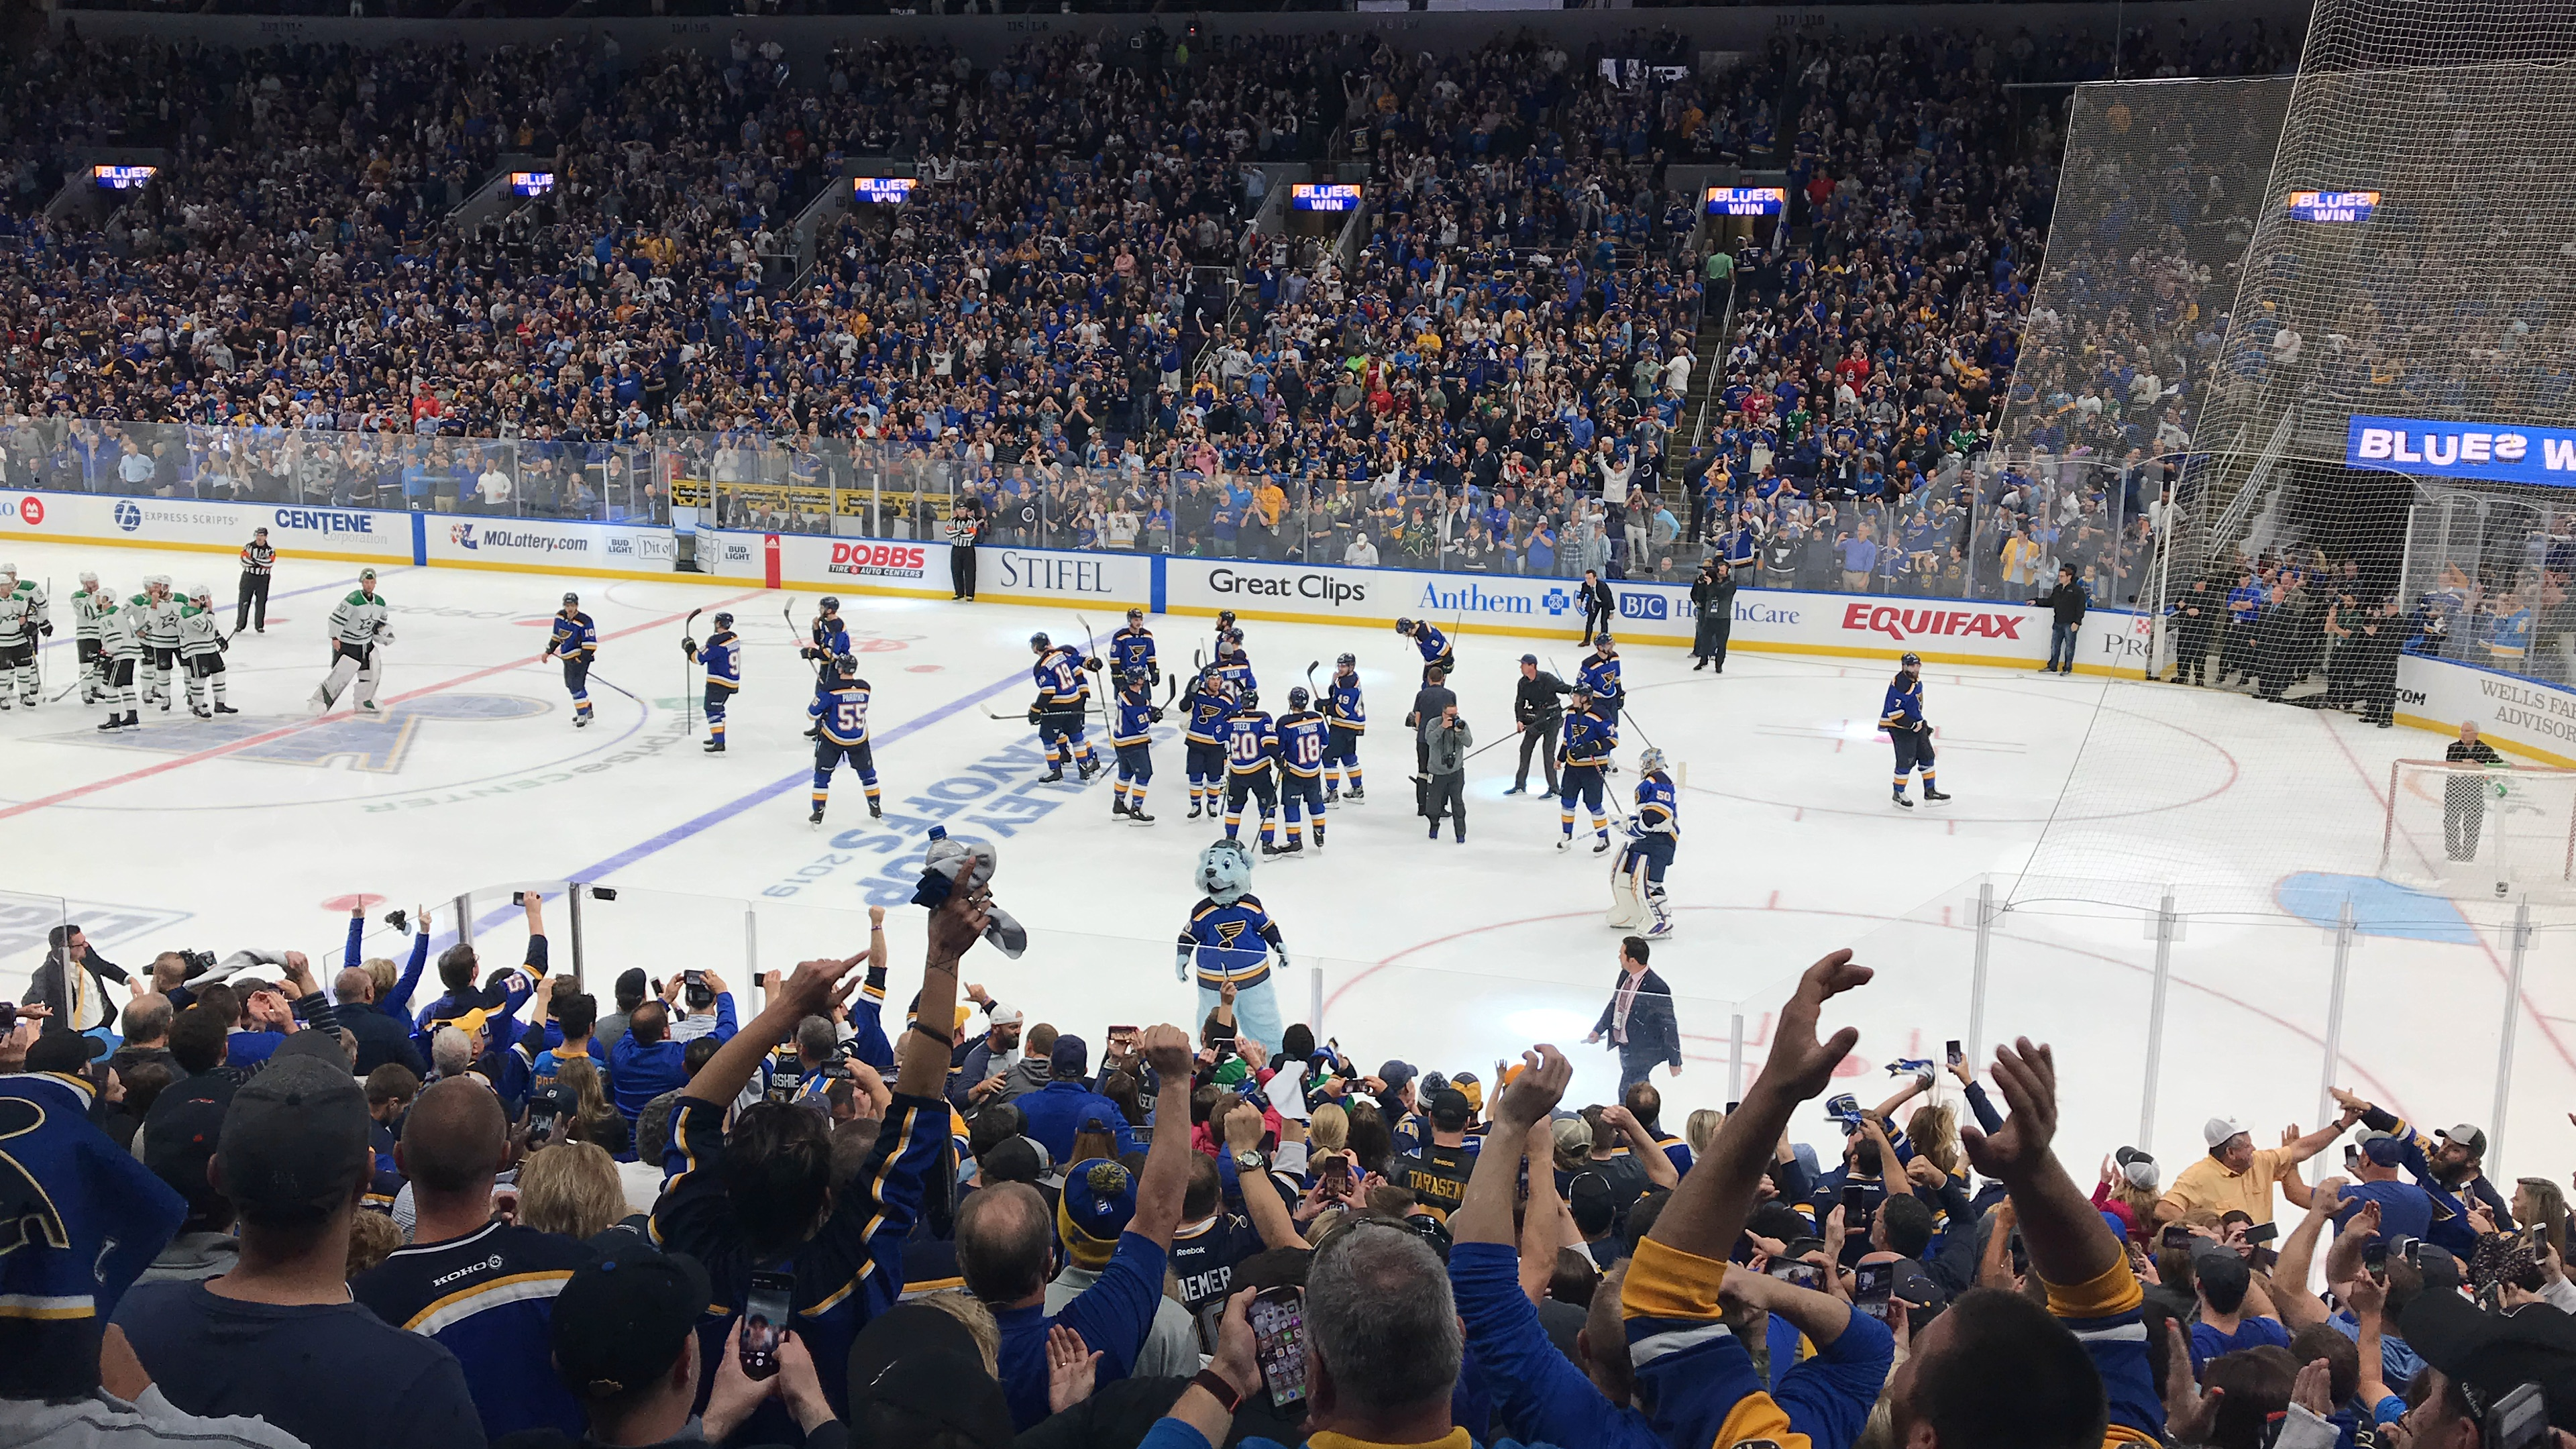 Sells:  Blues a big winner, St. Louisans win bigger